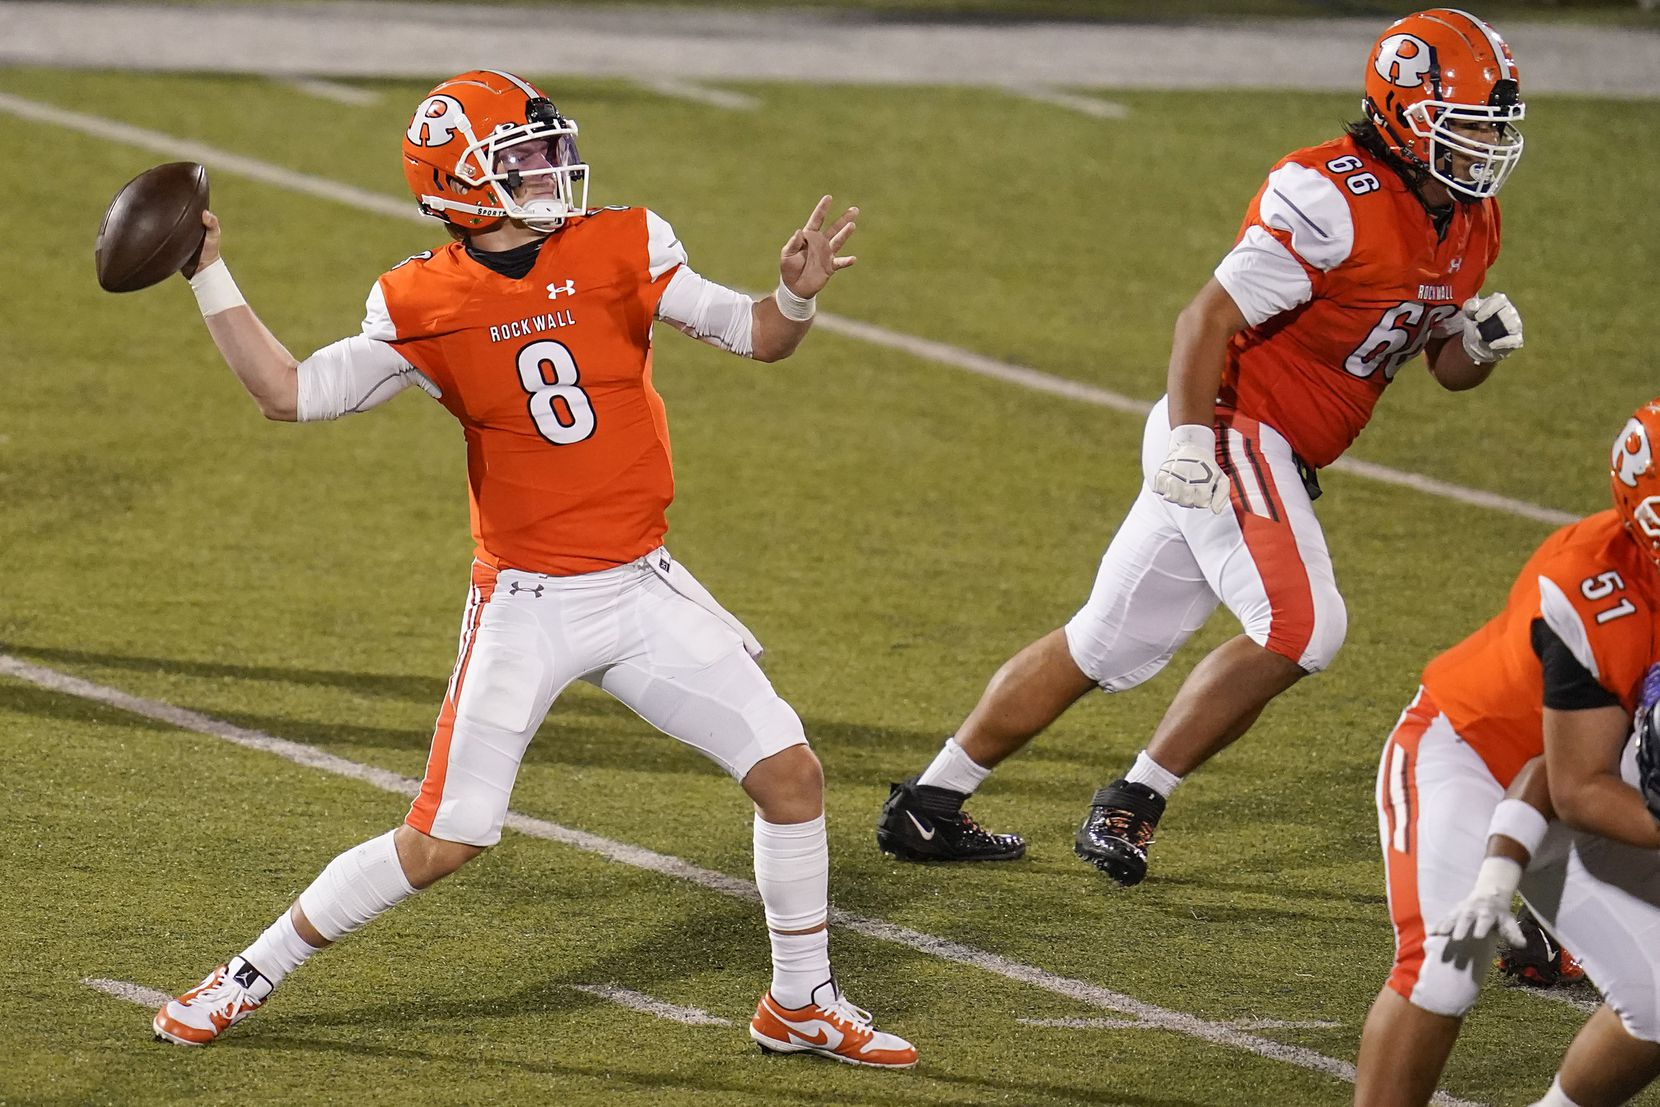 Rockwall quarterback Braedyn Locke throws a pass during the first half of a high school football game against Highland Park on Friday, Oct. 16, 2020, in Rockwall, Texas. (Smiley N. Pool/The Dallas Morning News)